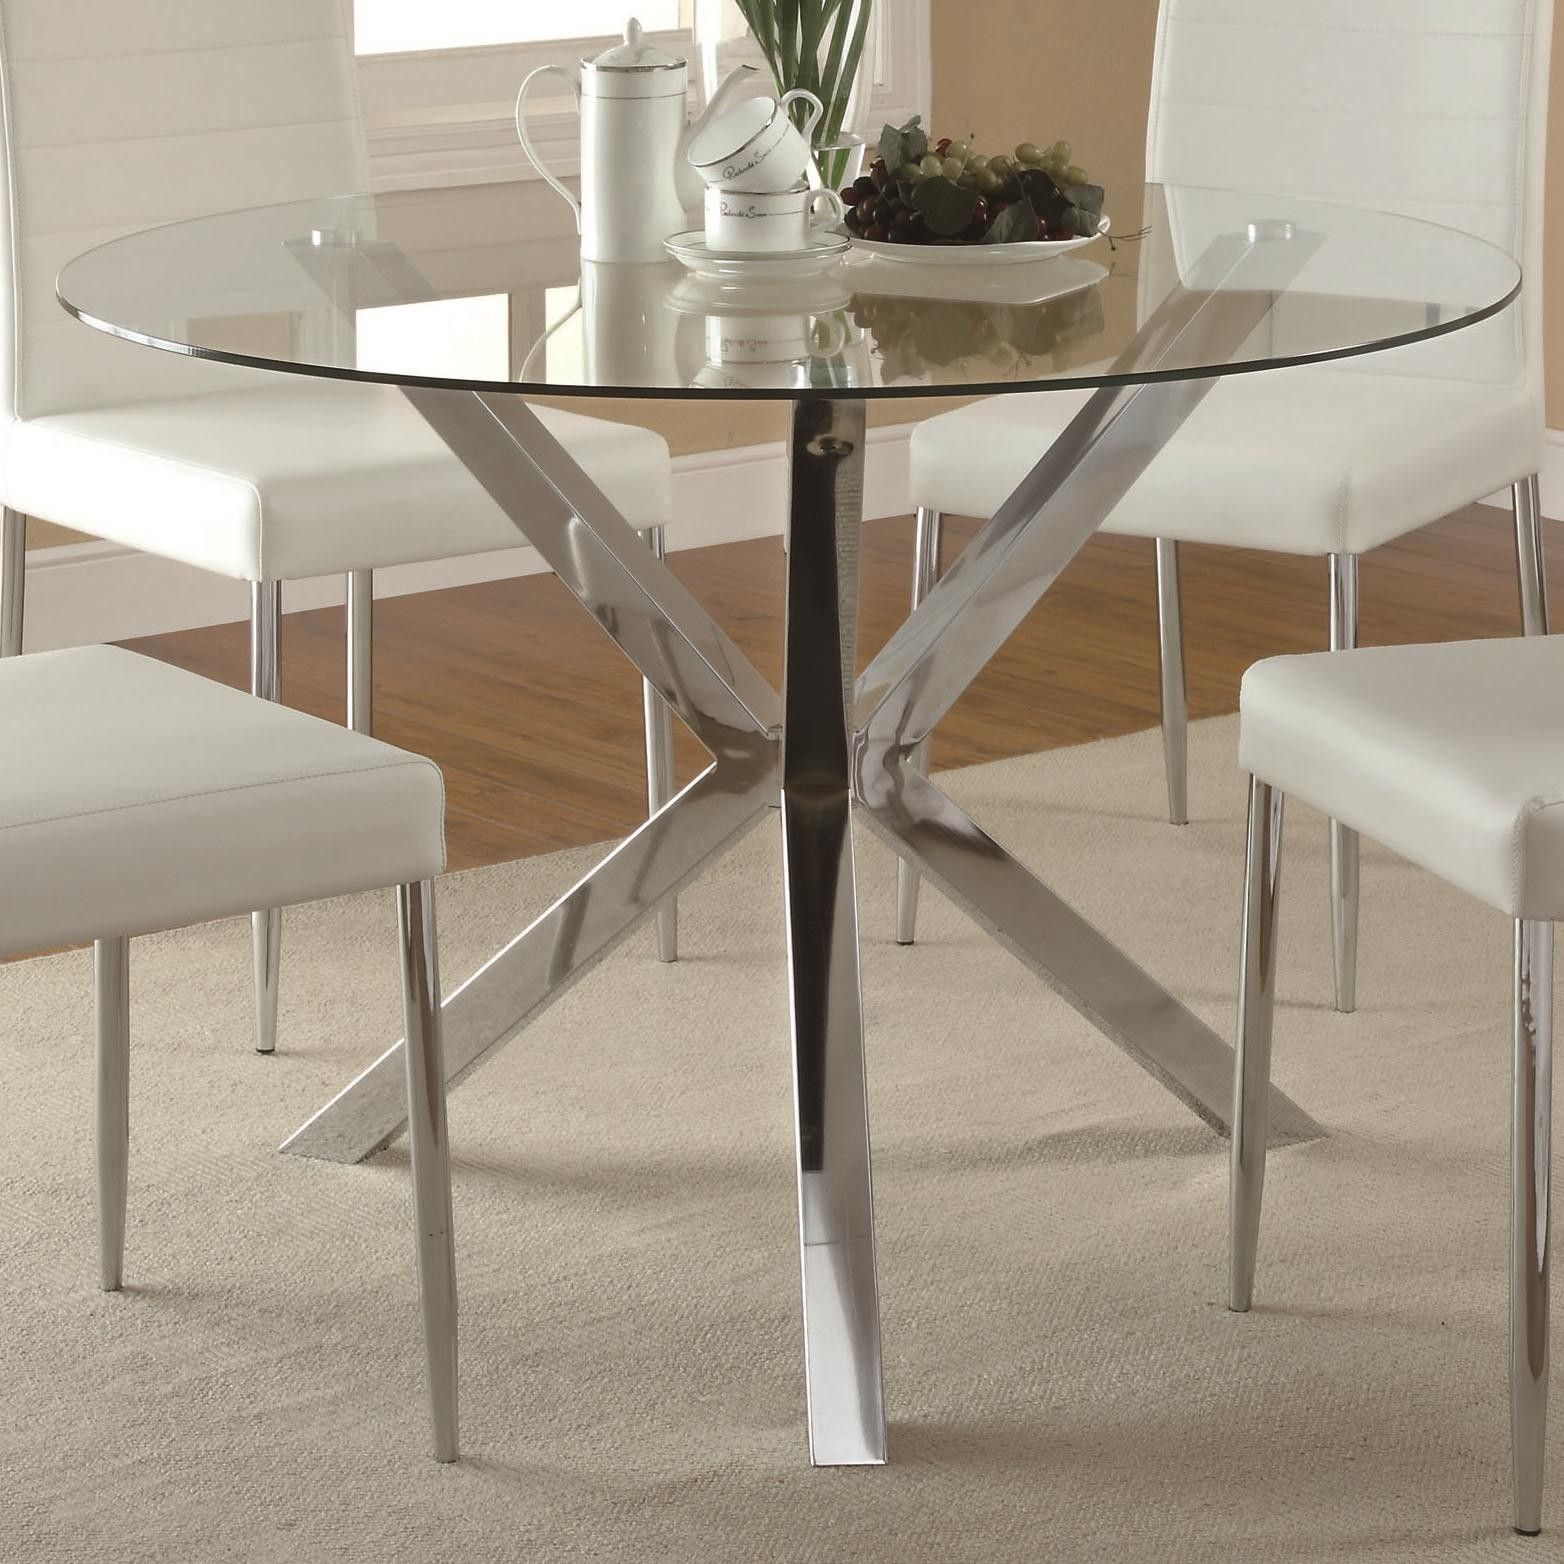 The National Bar And Dining Rooms: Vance Glass-Top Dining Table With Unique Chrome Base